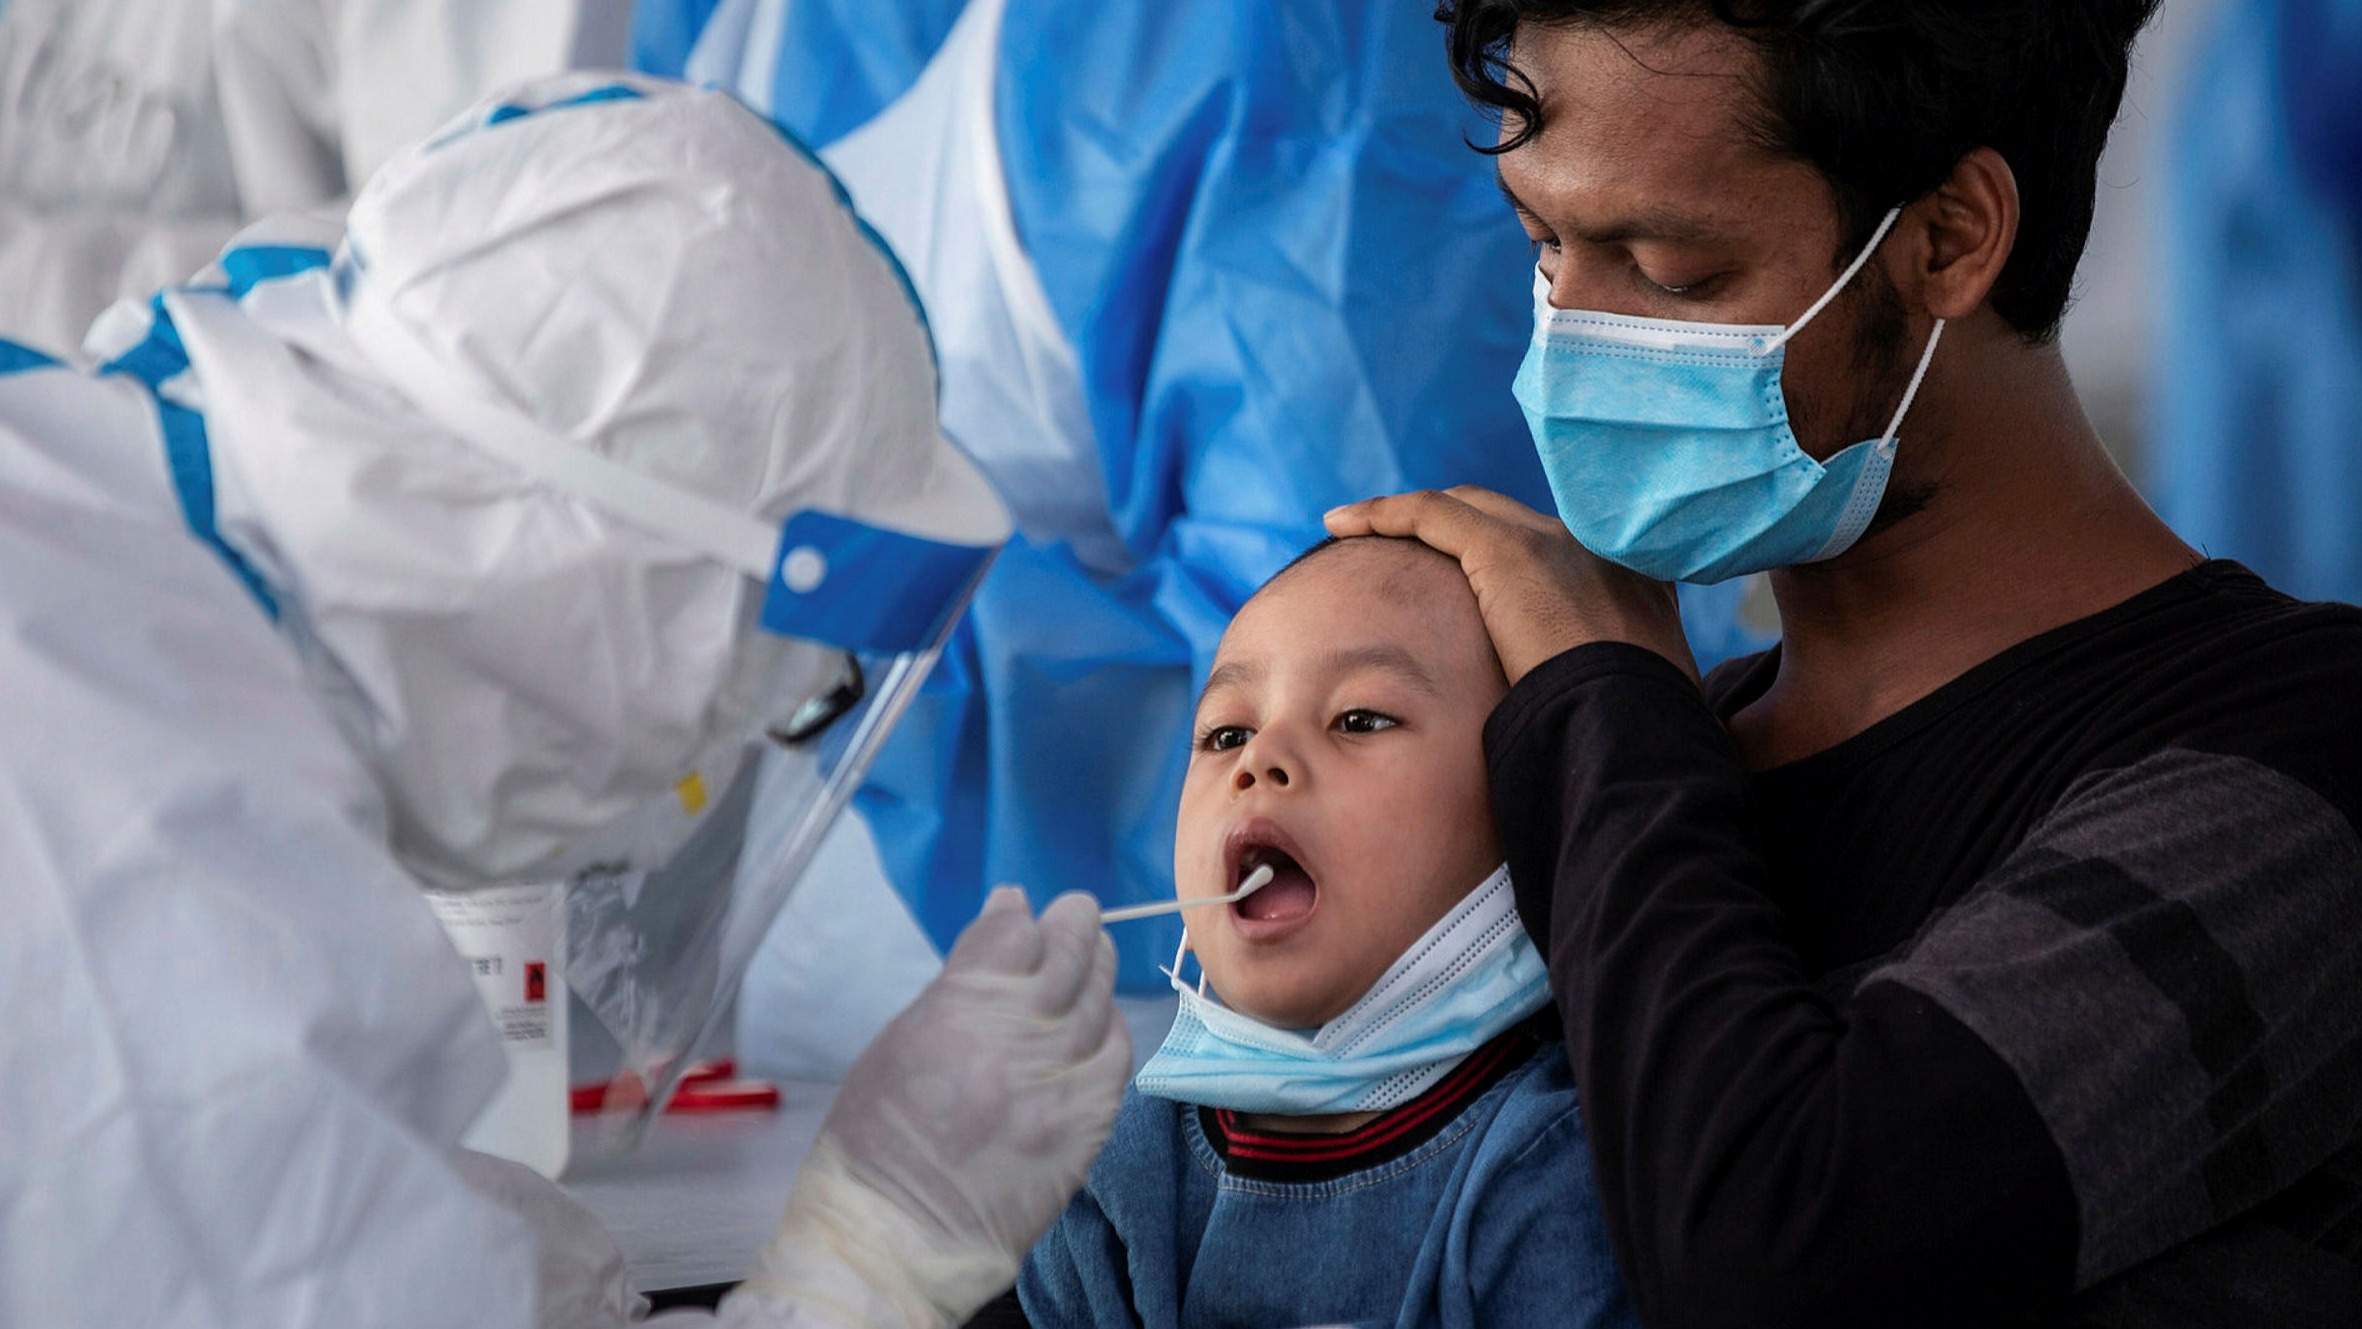 Effects of coronavirus in children adds to list of Covid-19 unknowns |  Financial Times